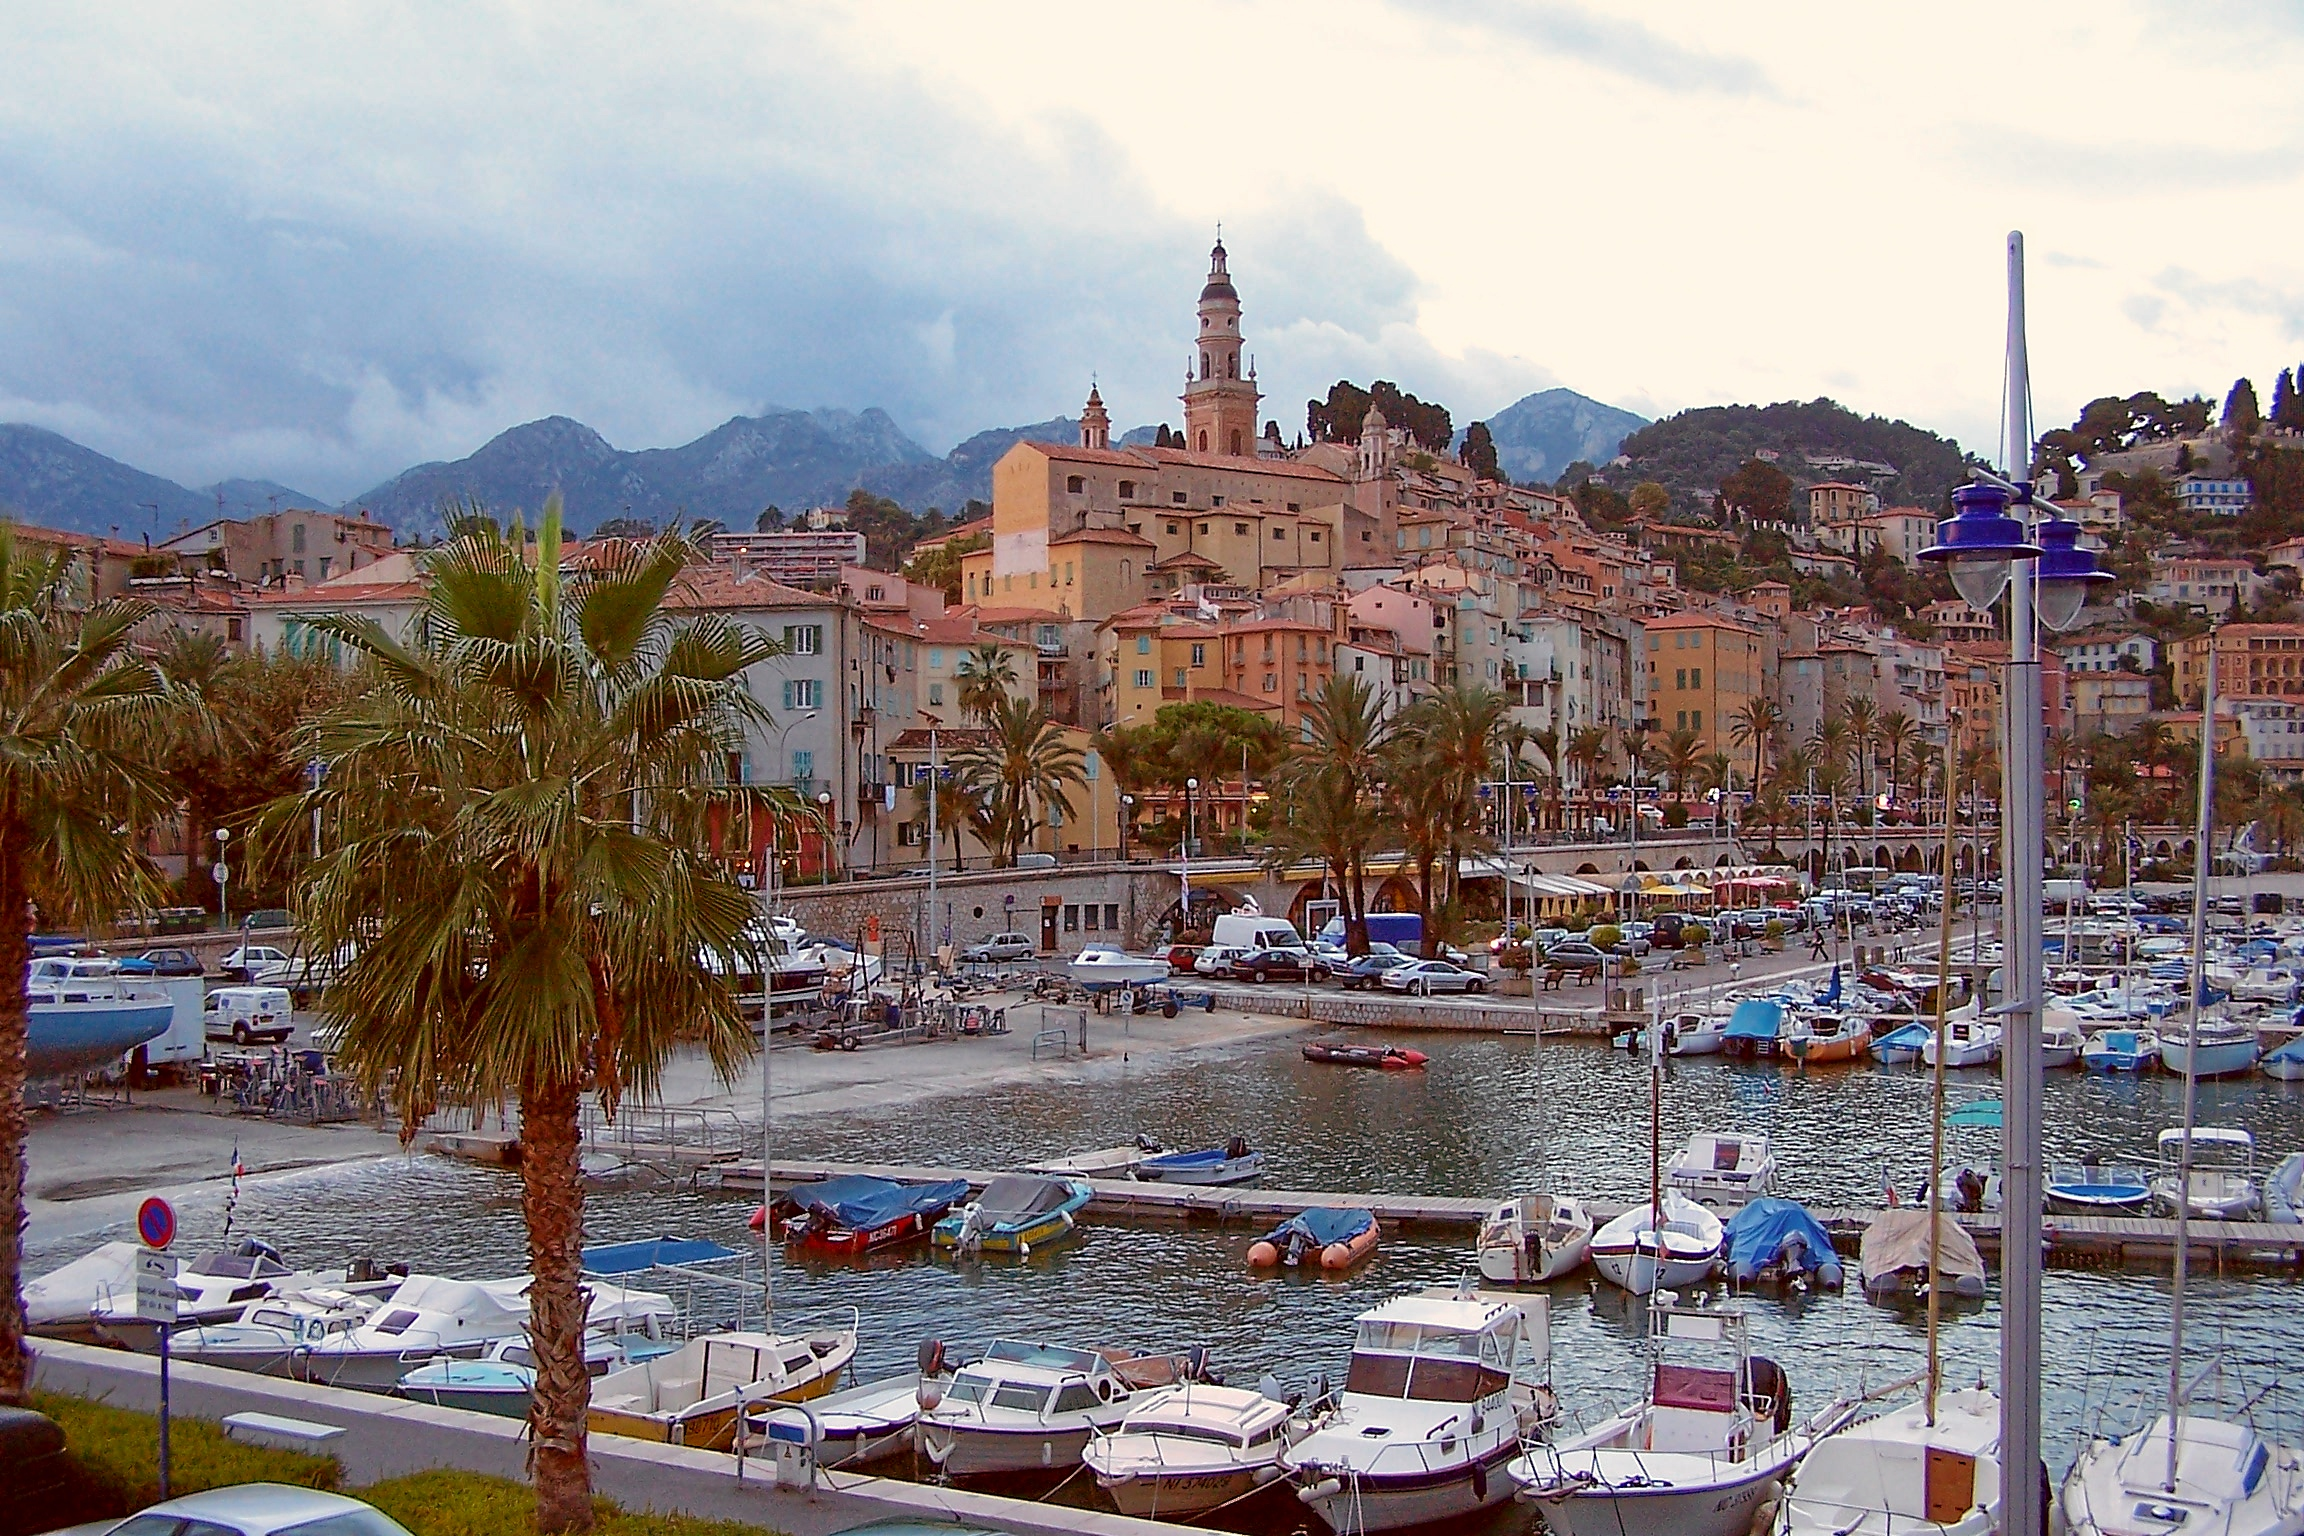 Menton France  City pictures : Original file ‎ 2,304 × 1,536 pixels, file size: 1.83 MB, MIME ...